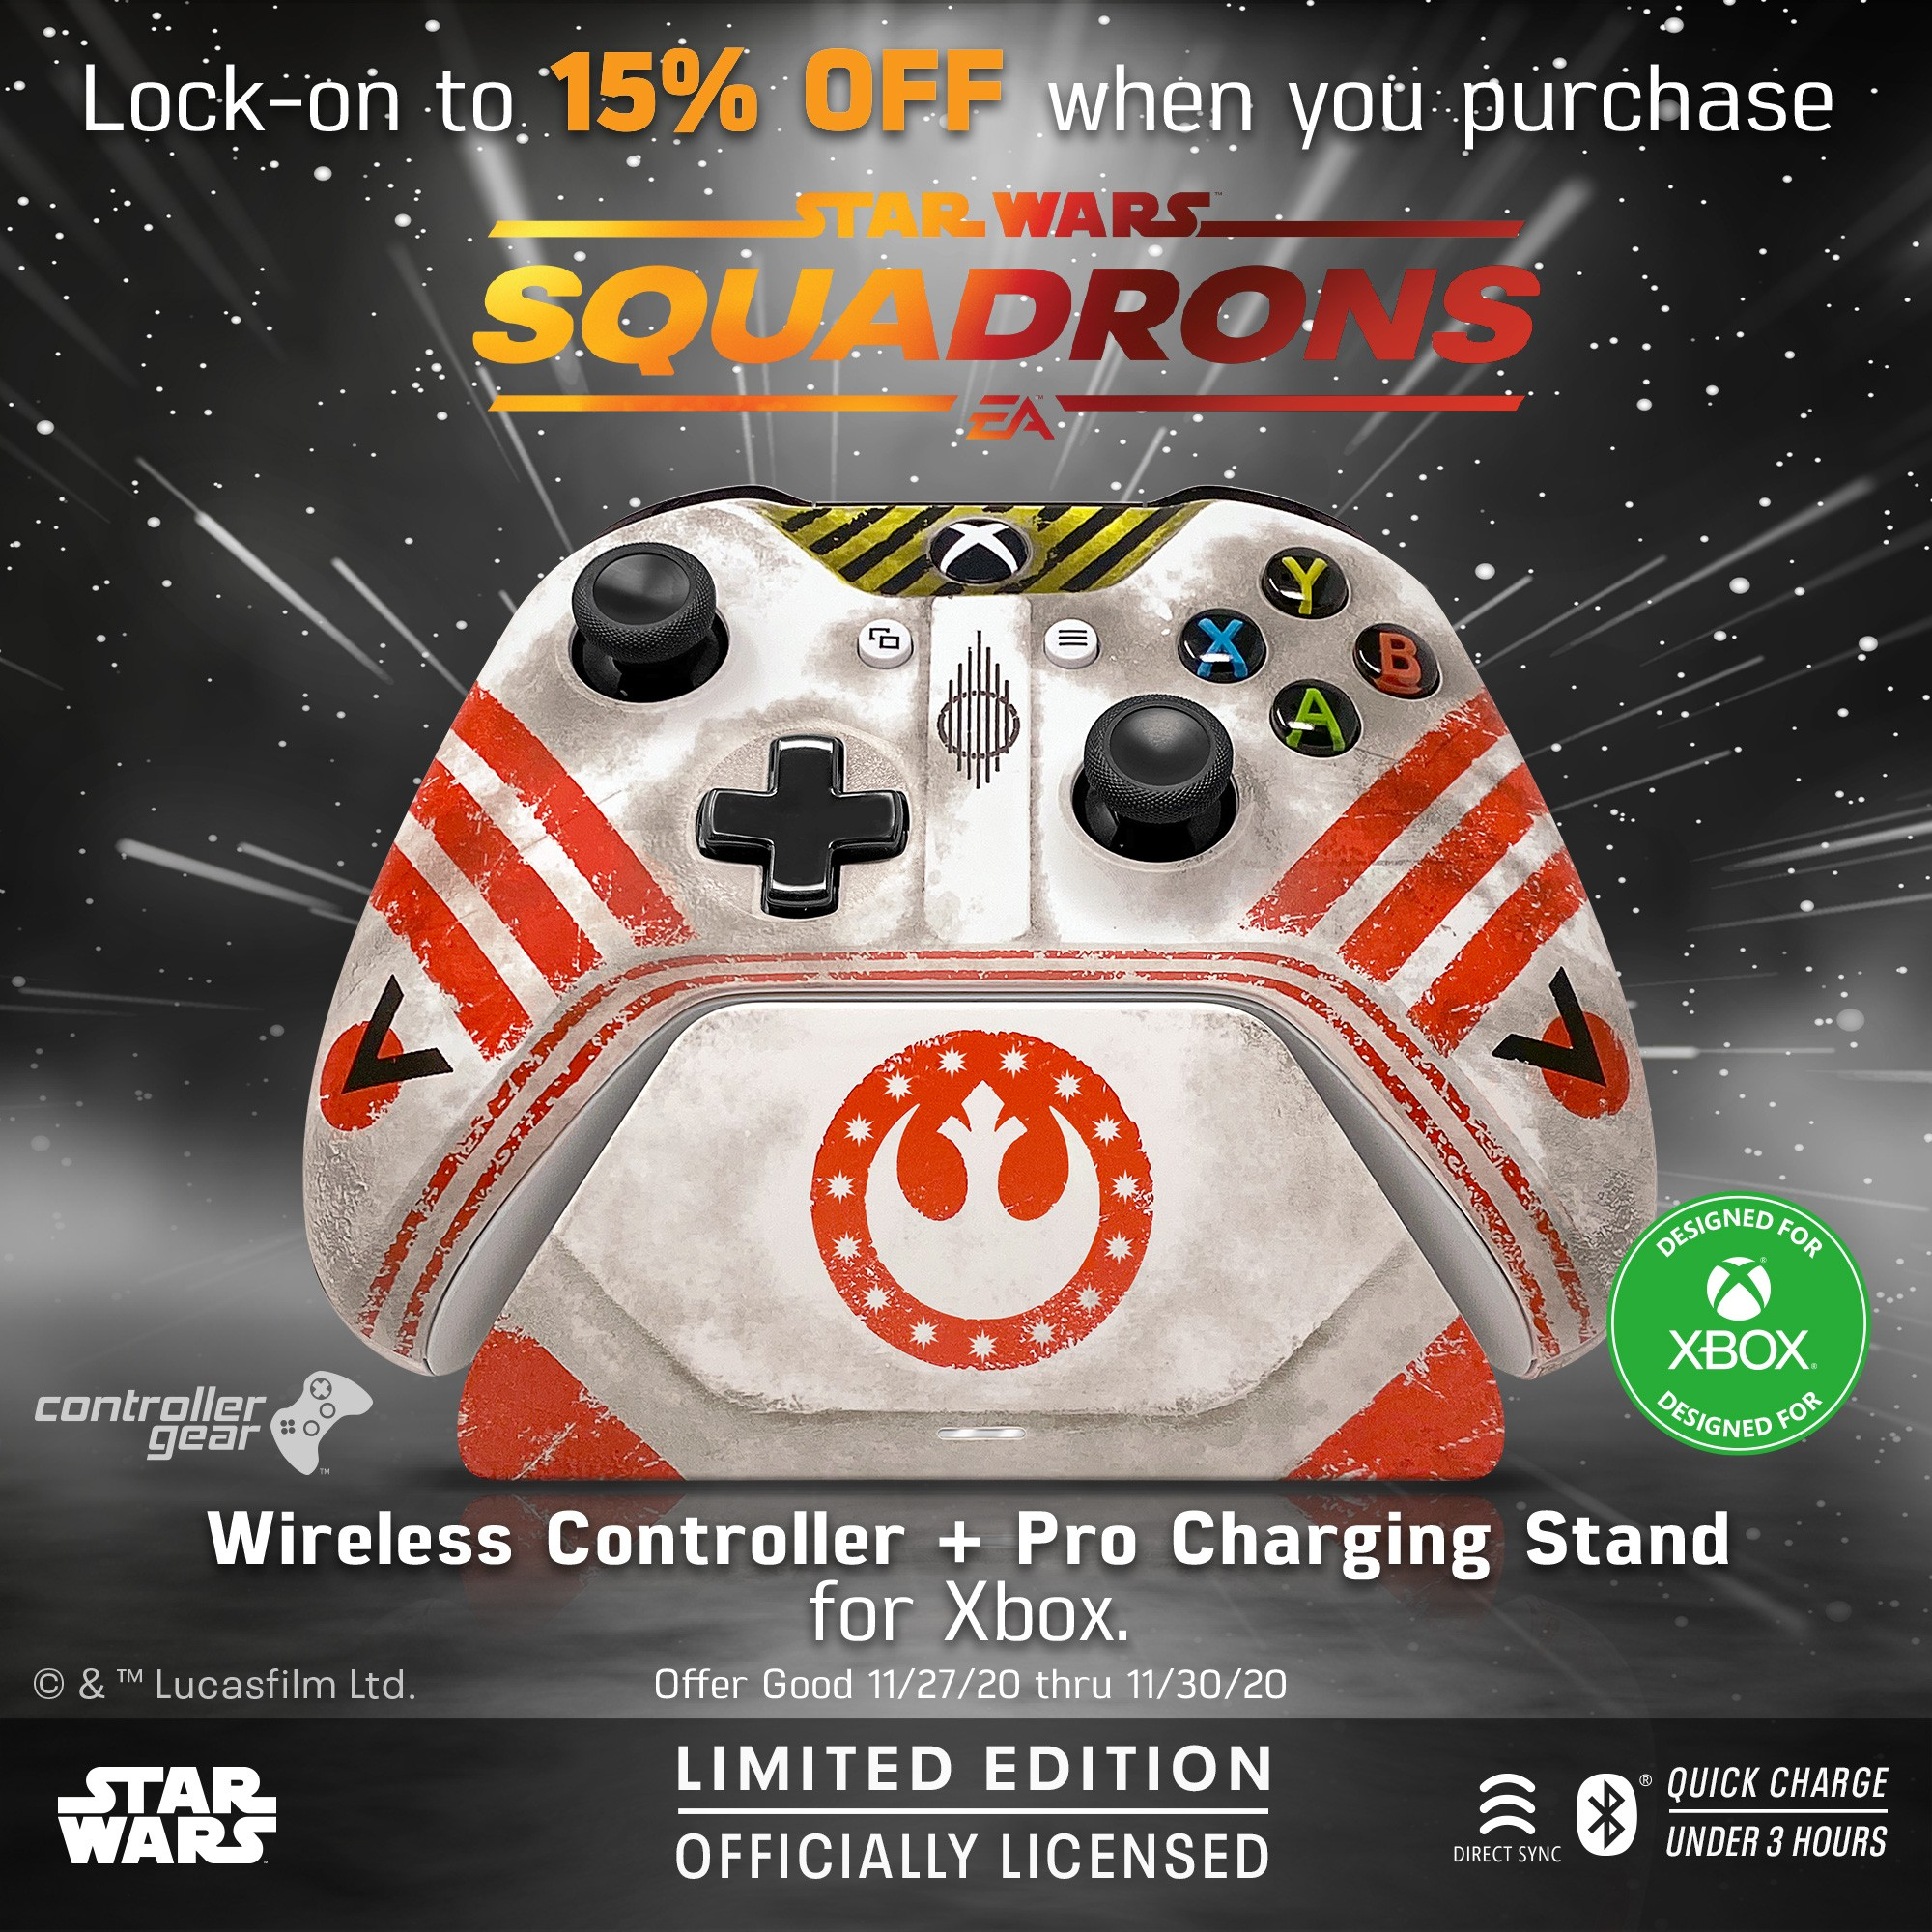 Wireless Controller and Pro Charging Stand for Xbox - Star Wars Squadrons